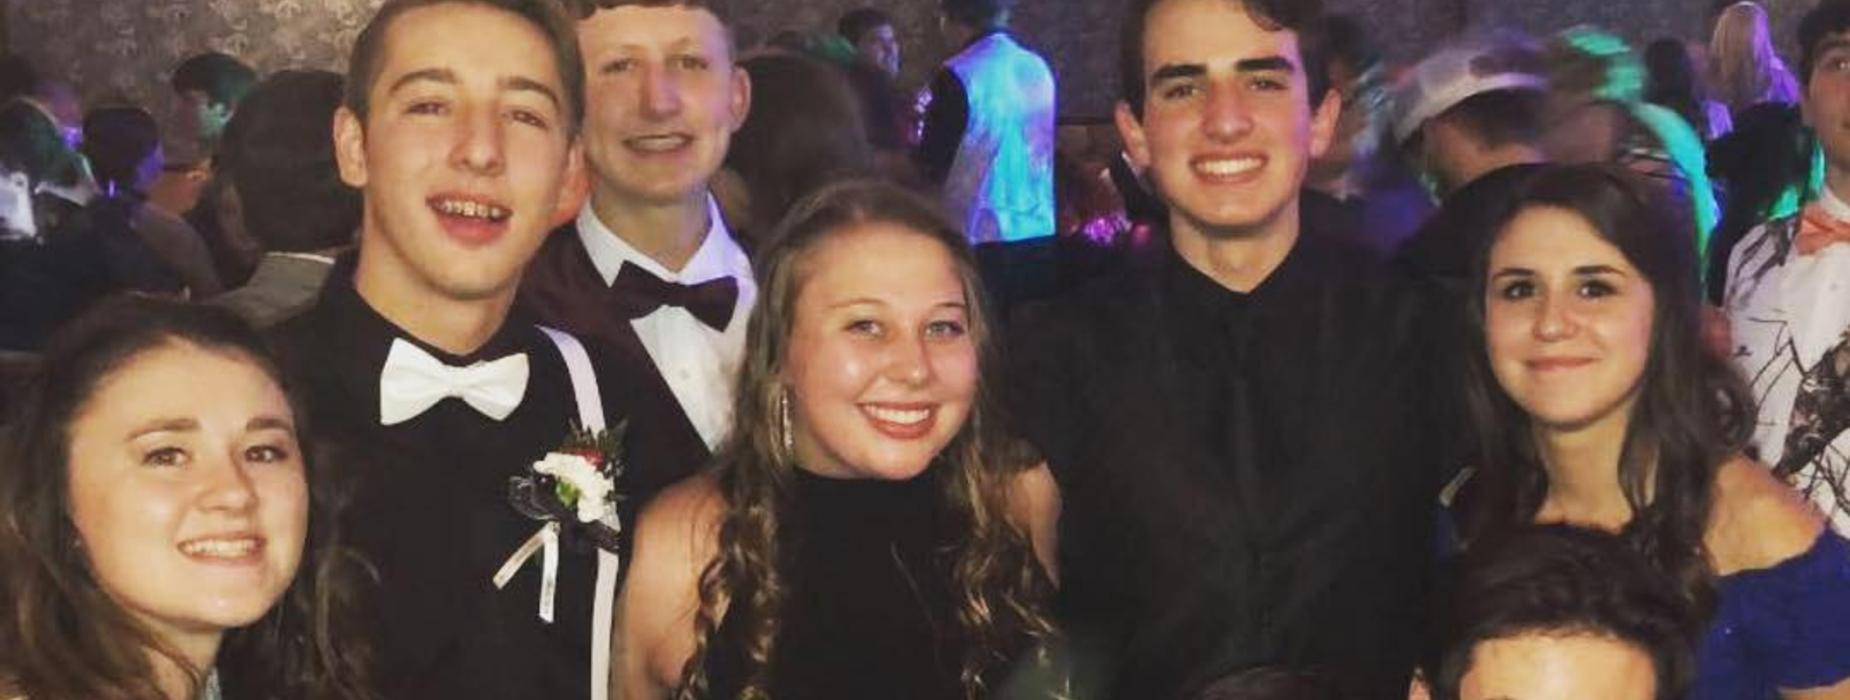 Students at a school dance